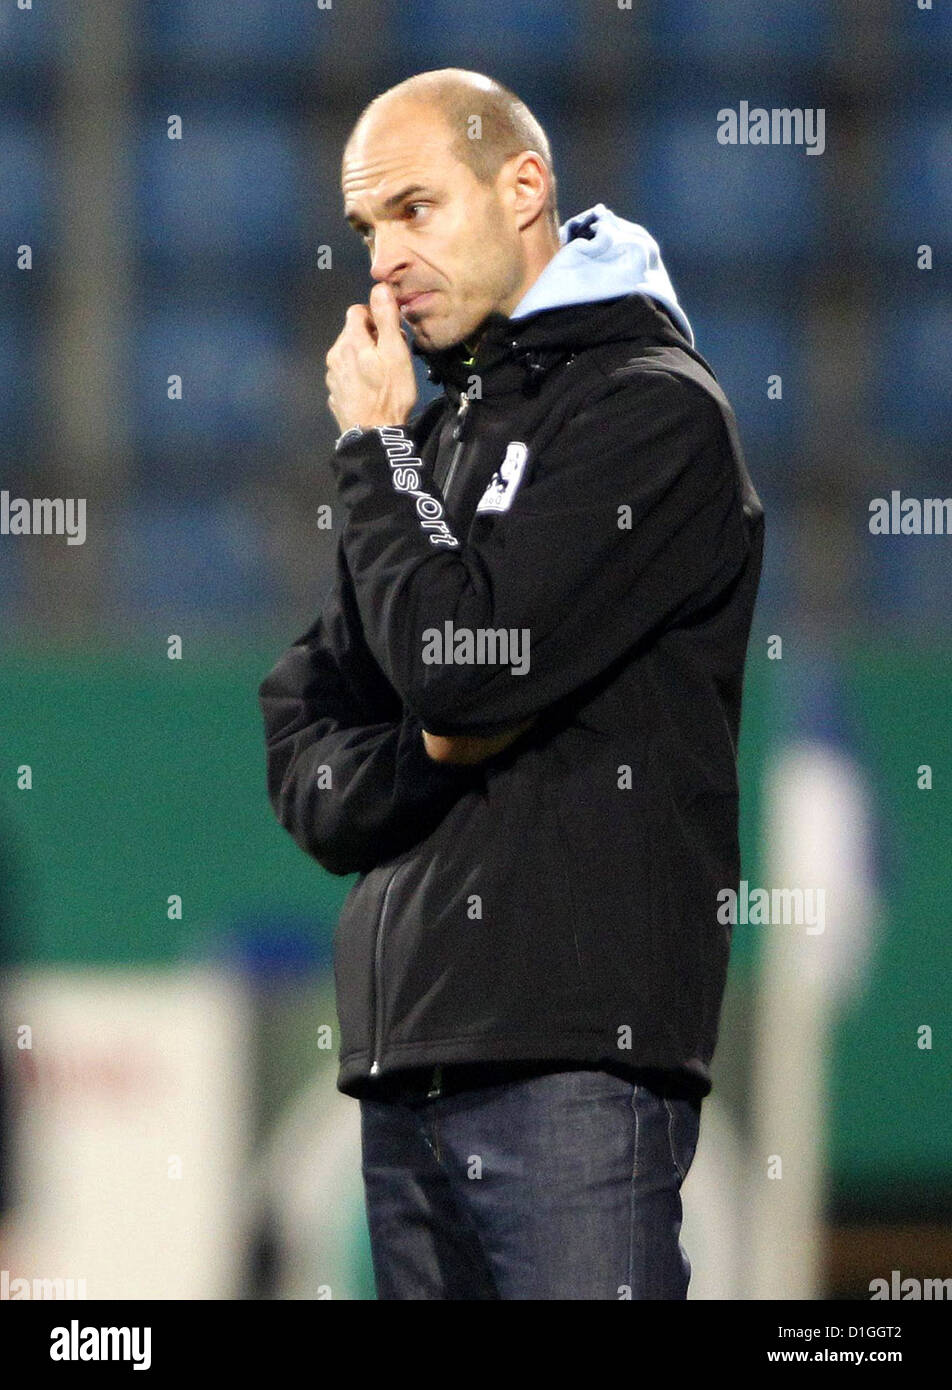 Munich's head coach Alexander Schmidt grabs his nose during the DFB Cup round of sixteen match between VfL Bochum - Stock Image